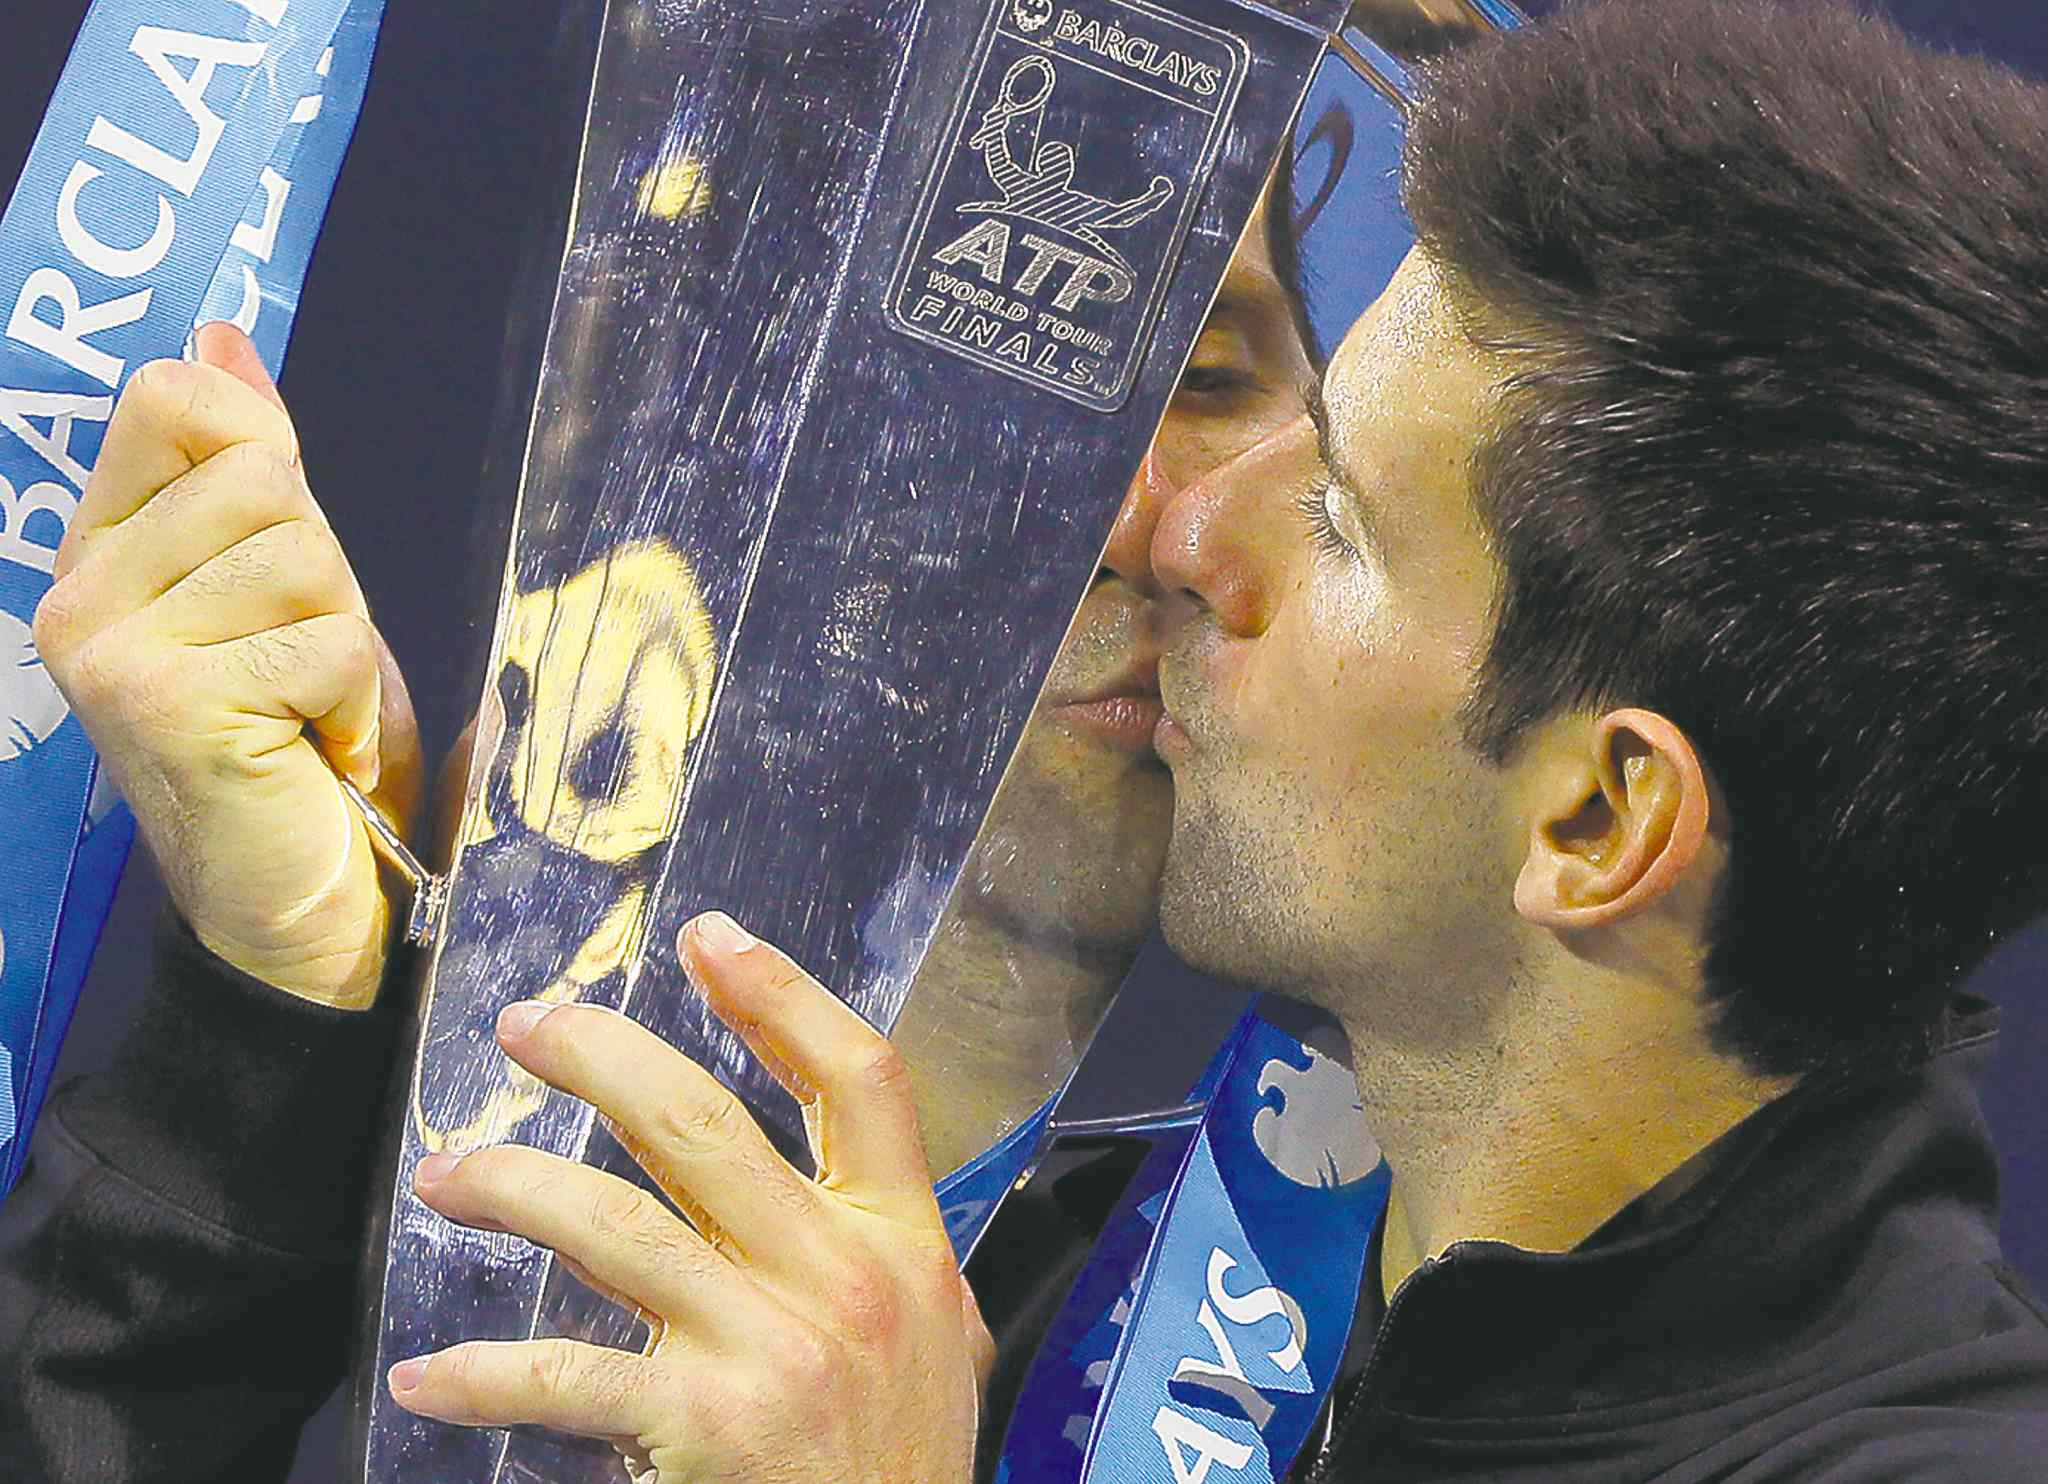 Djokovic puckers up on the only big trophy still eluding Nadal.